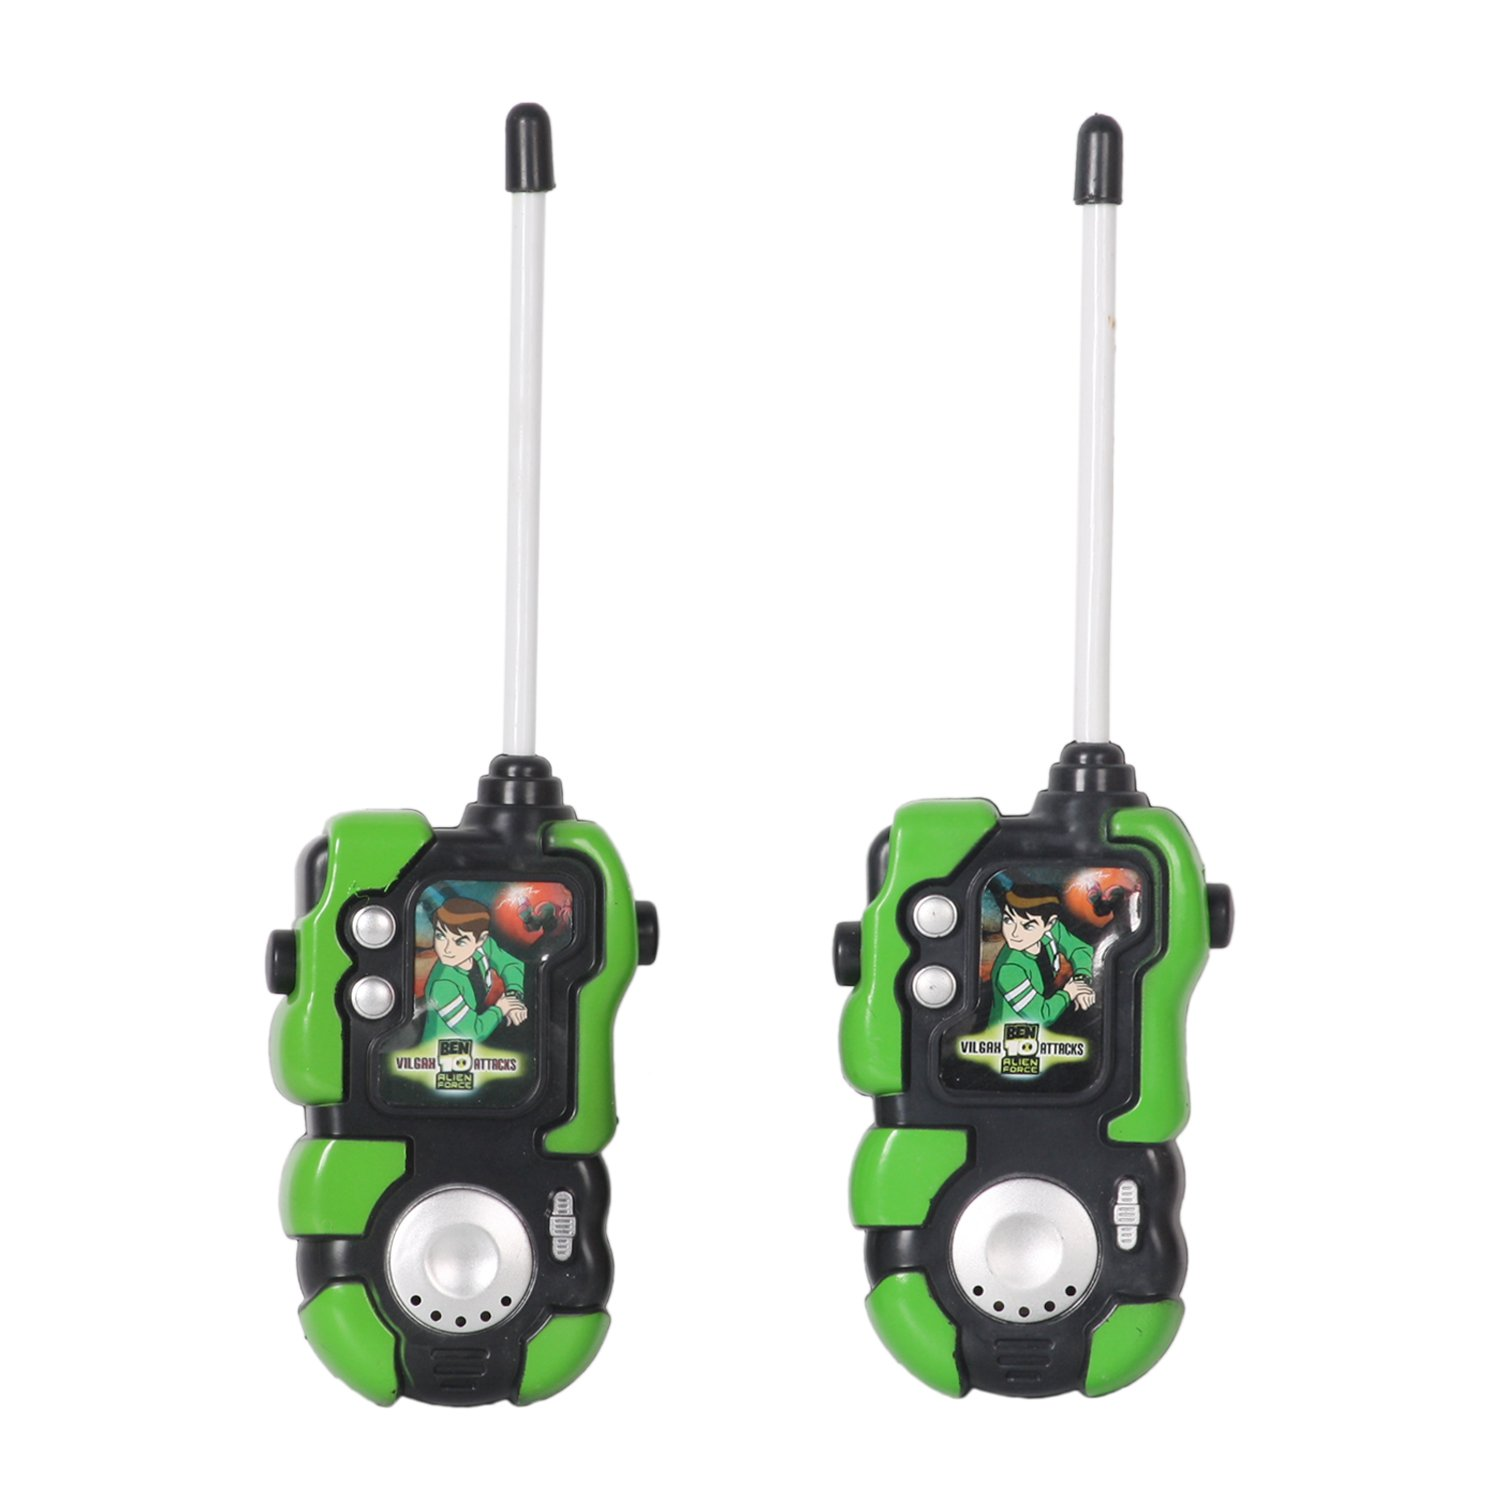 Huang Cheng Toys Alien Force Kids Handheld Walkie-Talkie Pack of 2 Communication Toy by Huang Cheng Toys (Image #1)